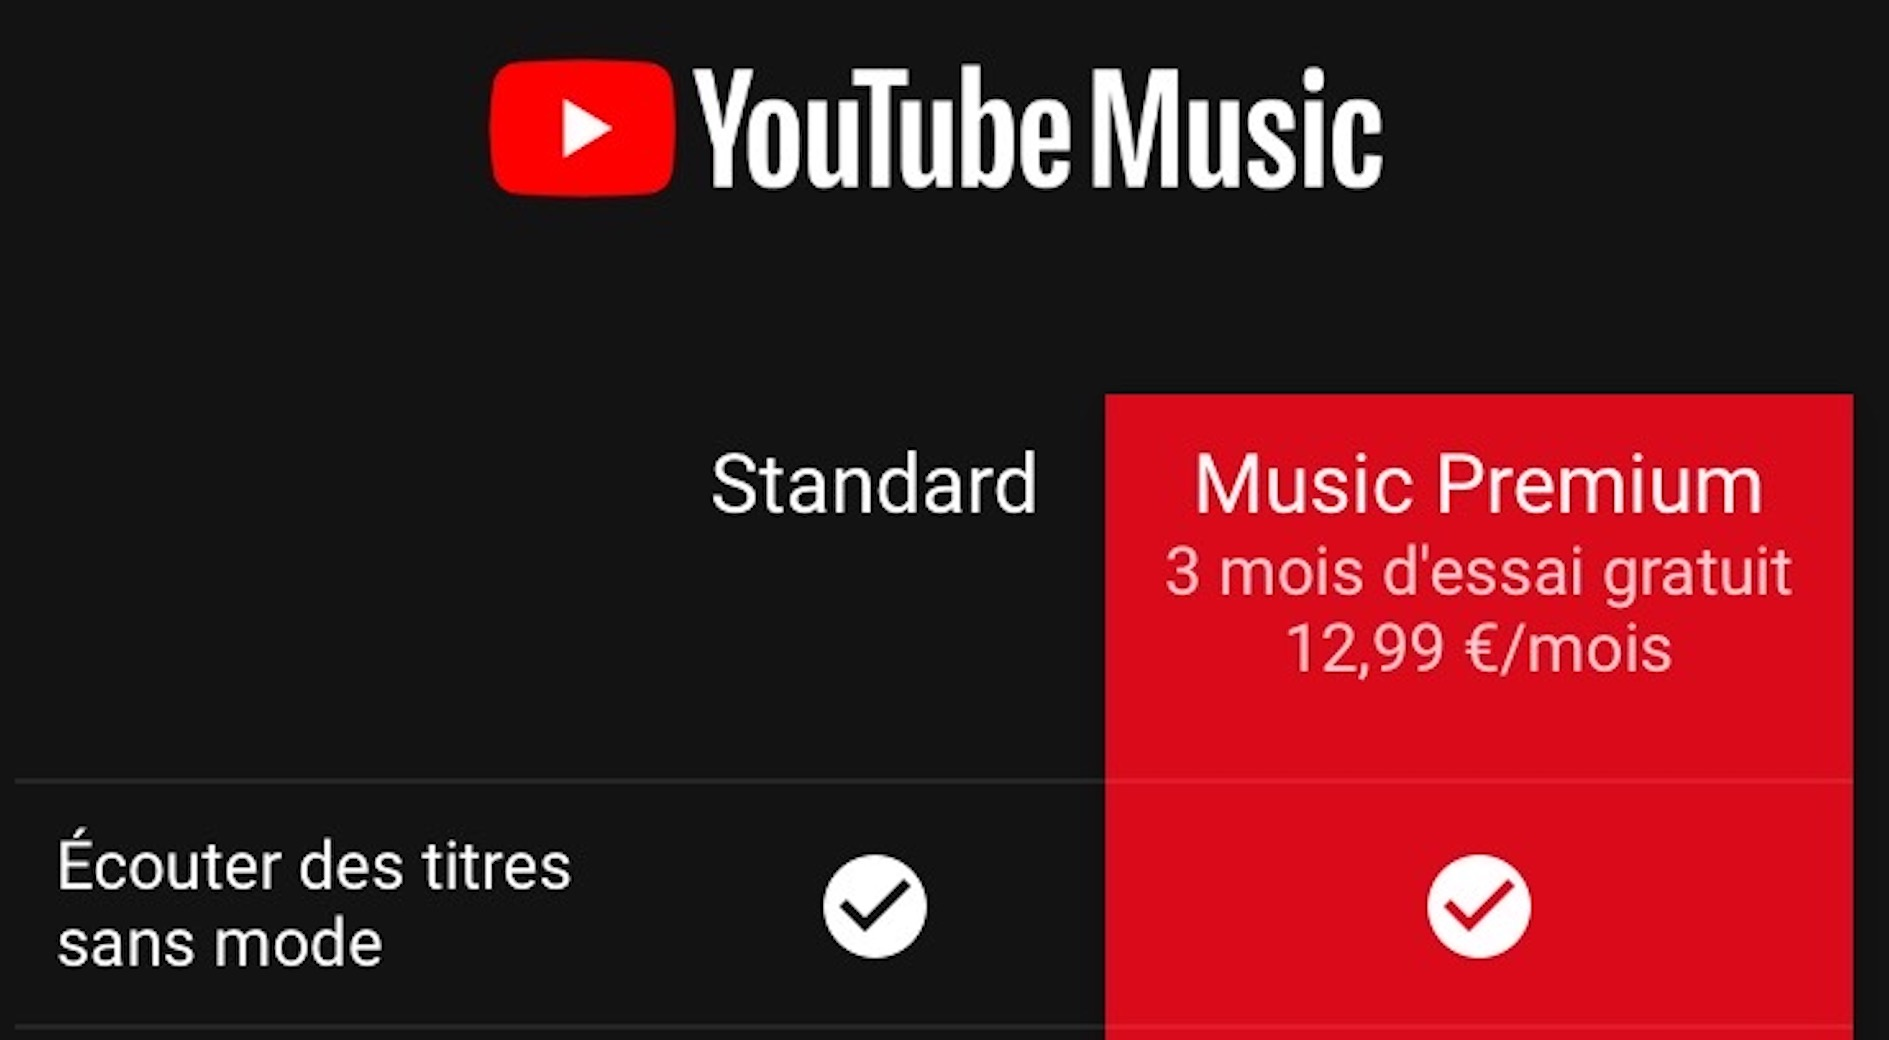 Do not create a YouTube Music Premium account with your iPhone Tech 4098cc7f8